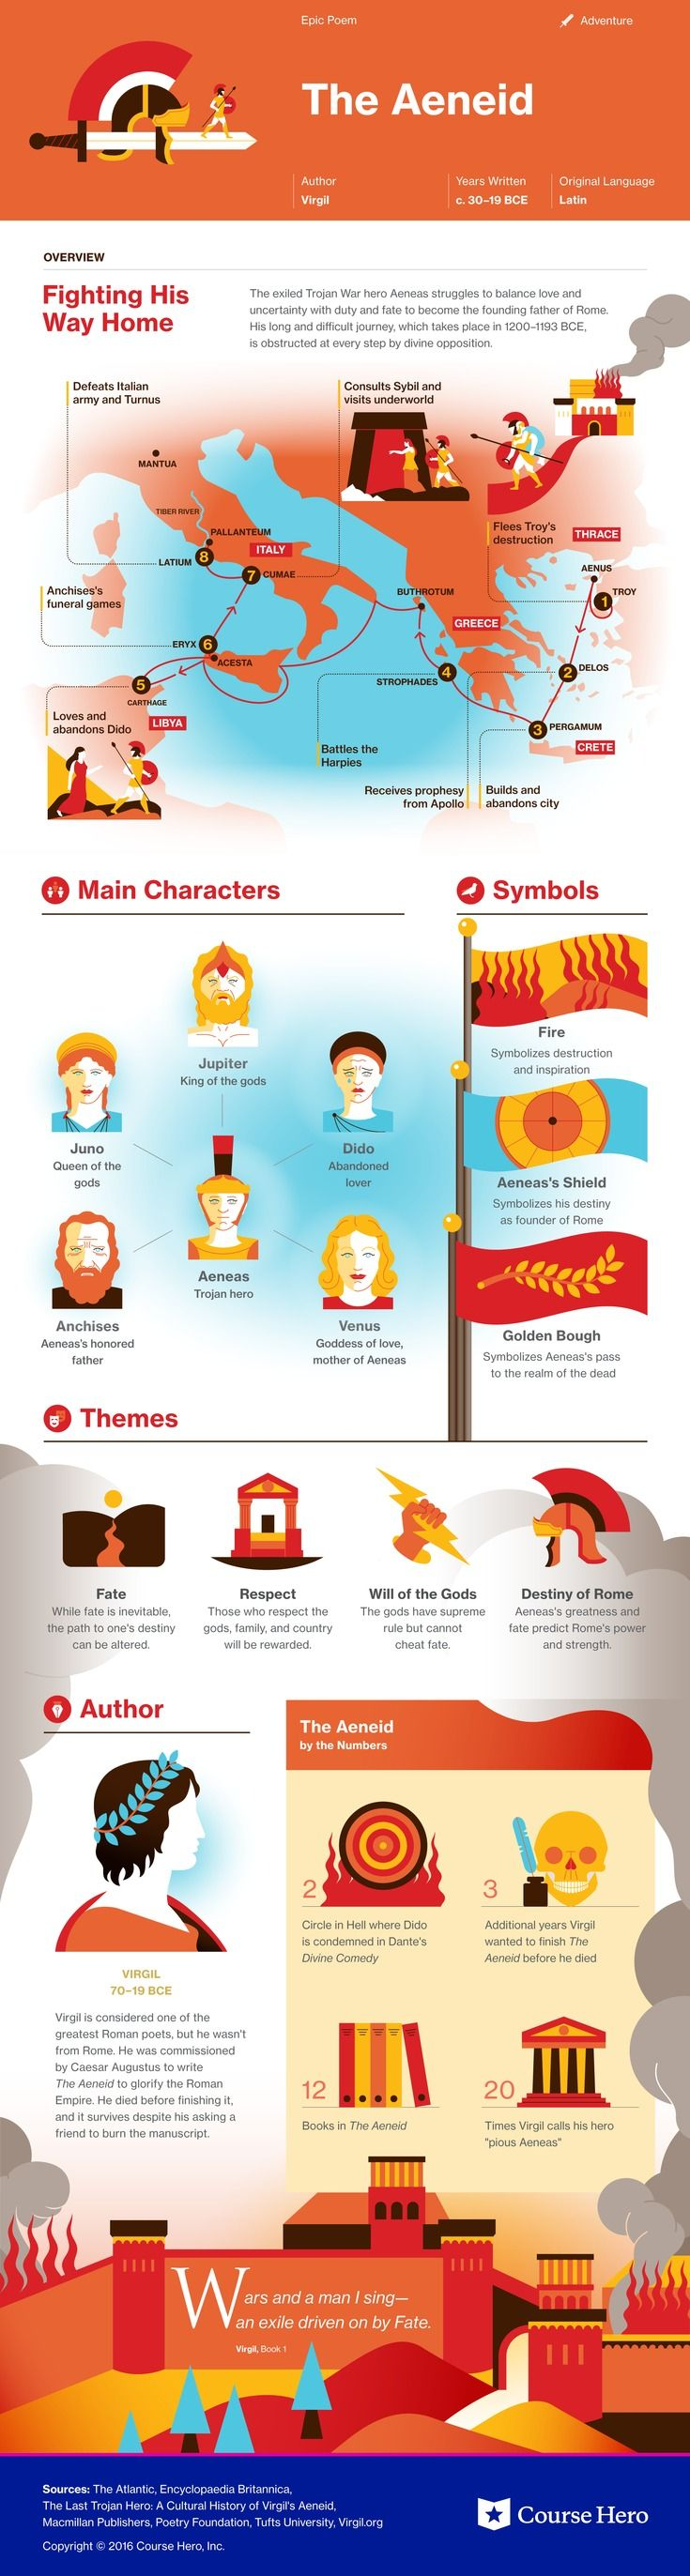 This @CourseHero infographic on The Aeneid is both visually stunning and informative!